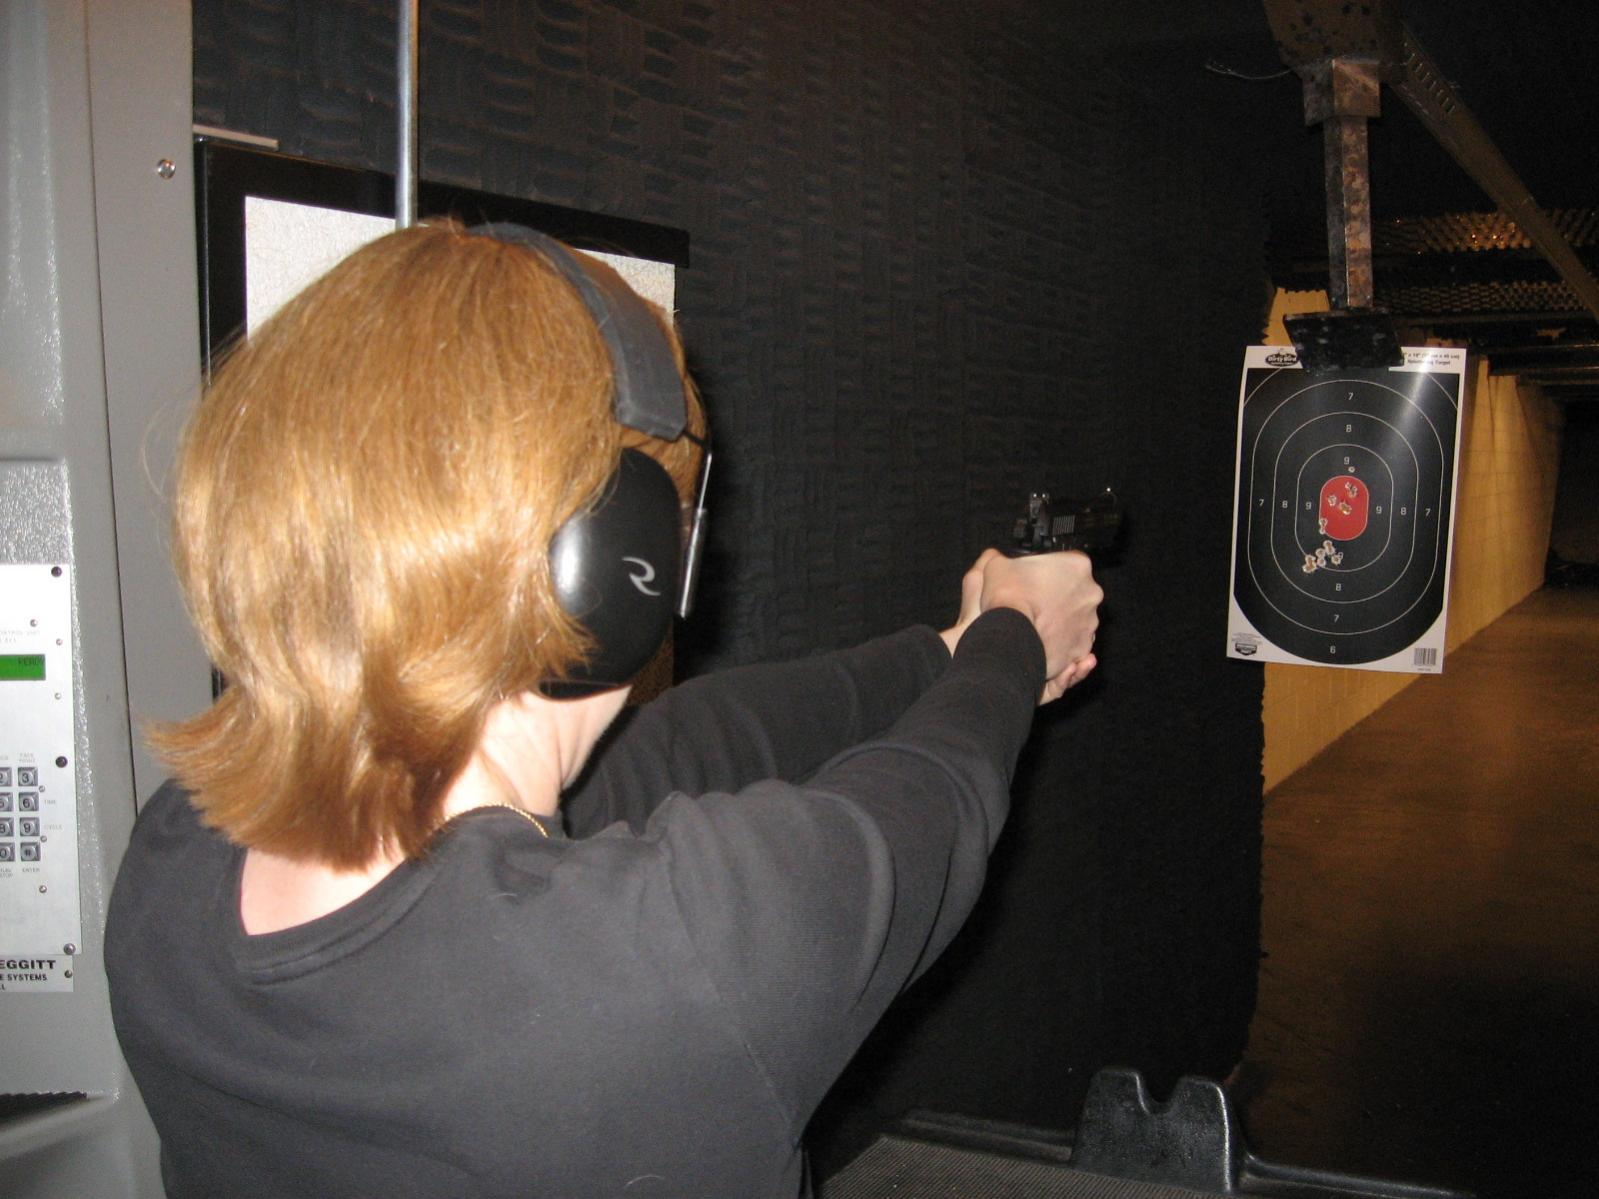 Range report: My Wife's 1st ever time to shoot-picture-013.jpg